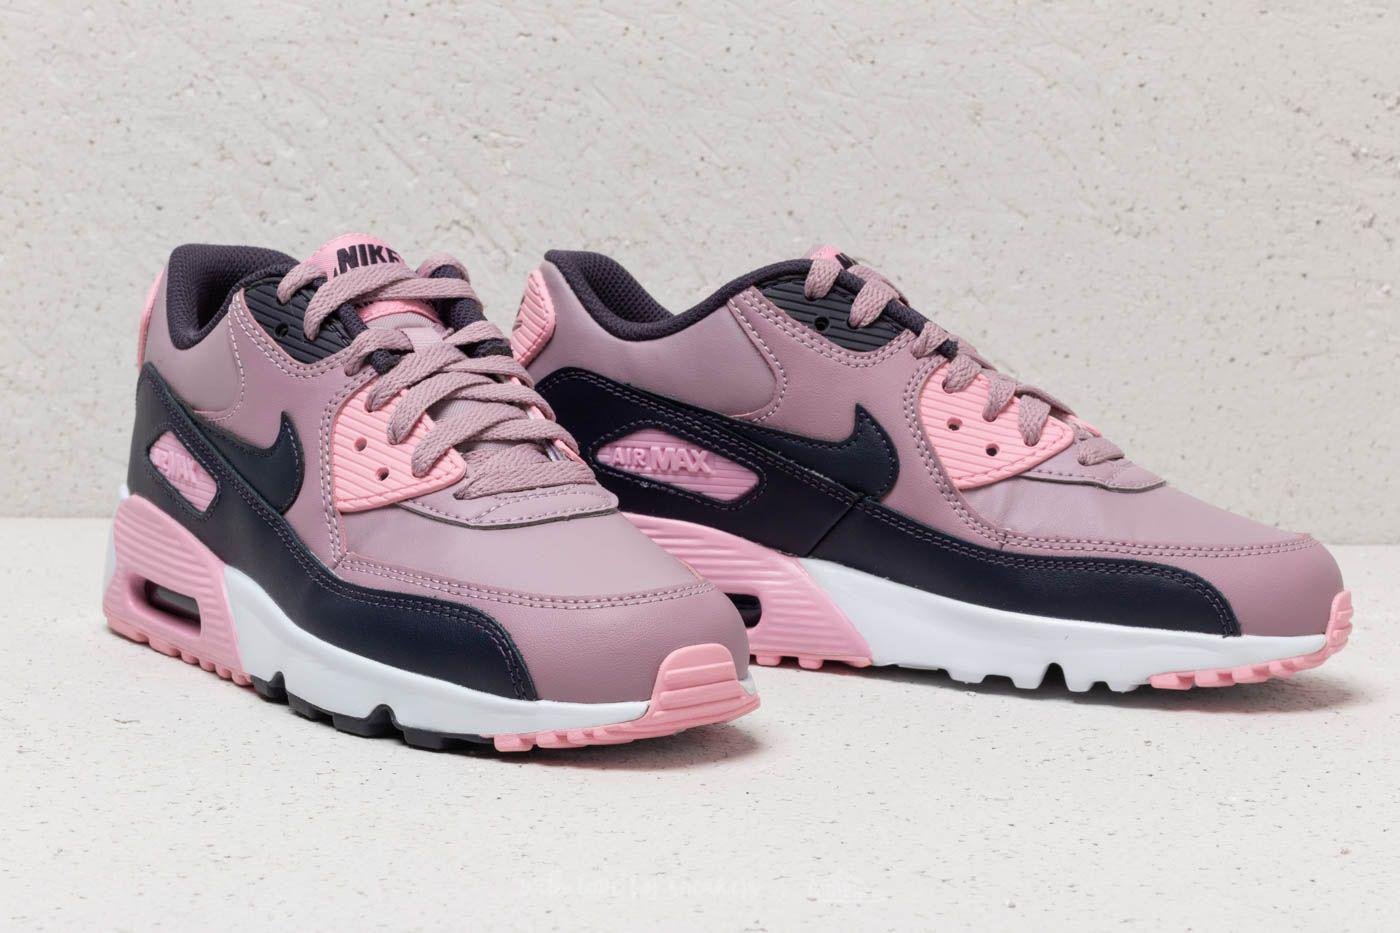 0f6c446da4 Nike Air Max 90 Leather (gs) Elemental Rose/ Gridiron-pink in Pink ...